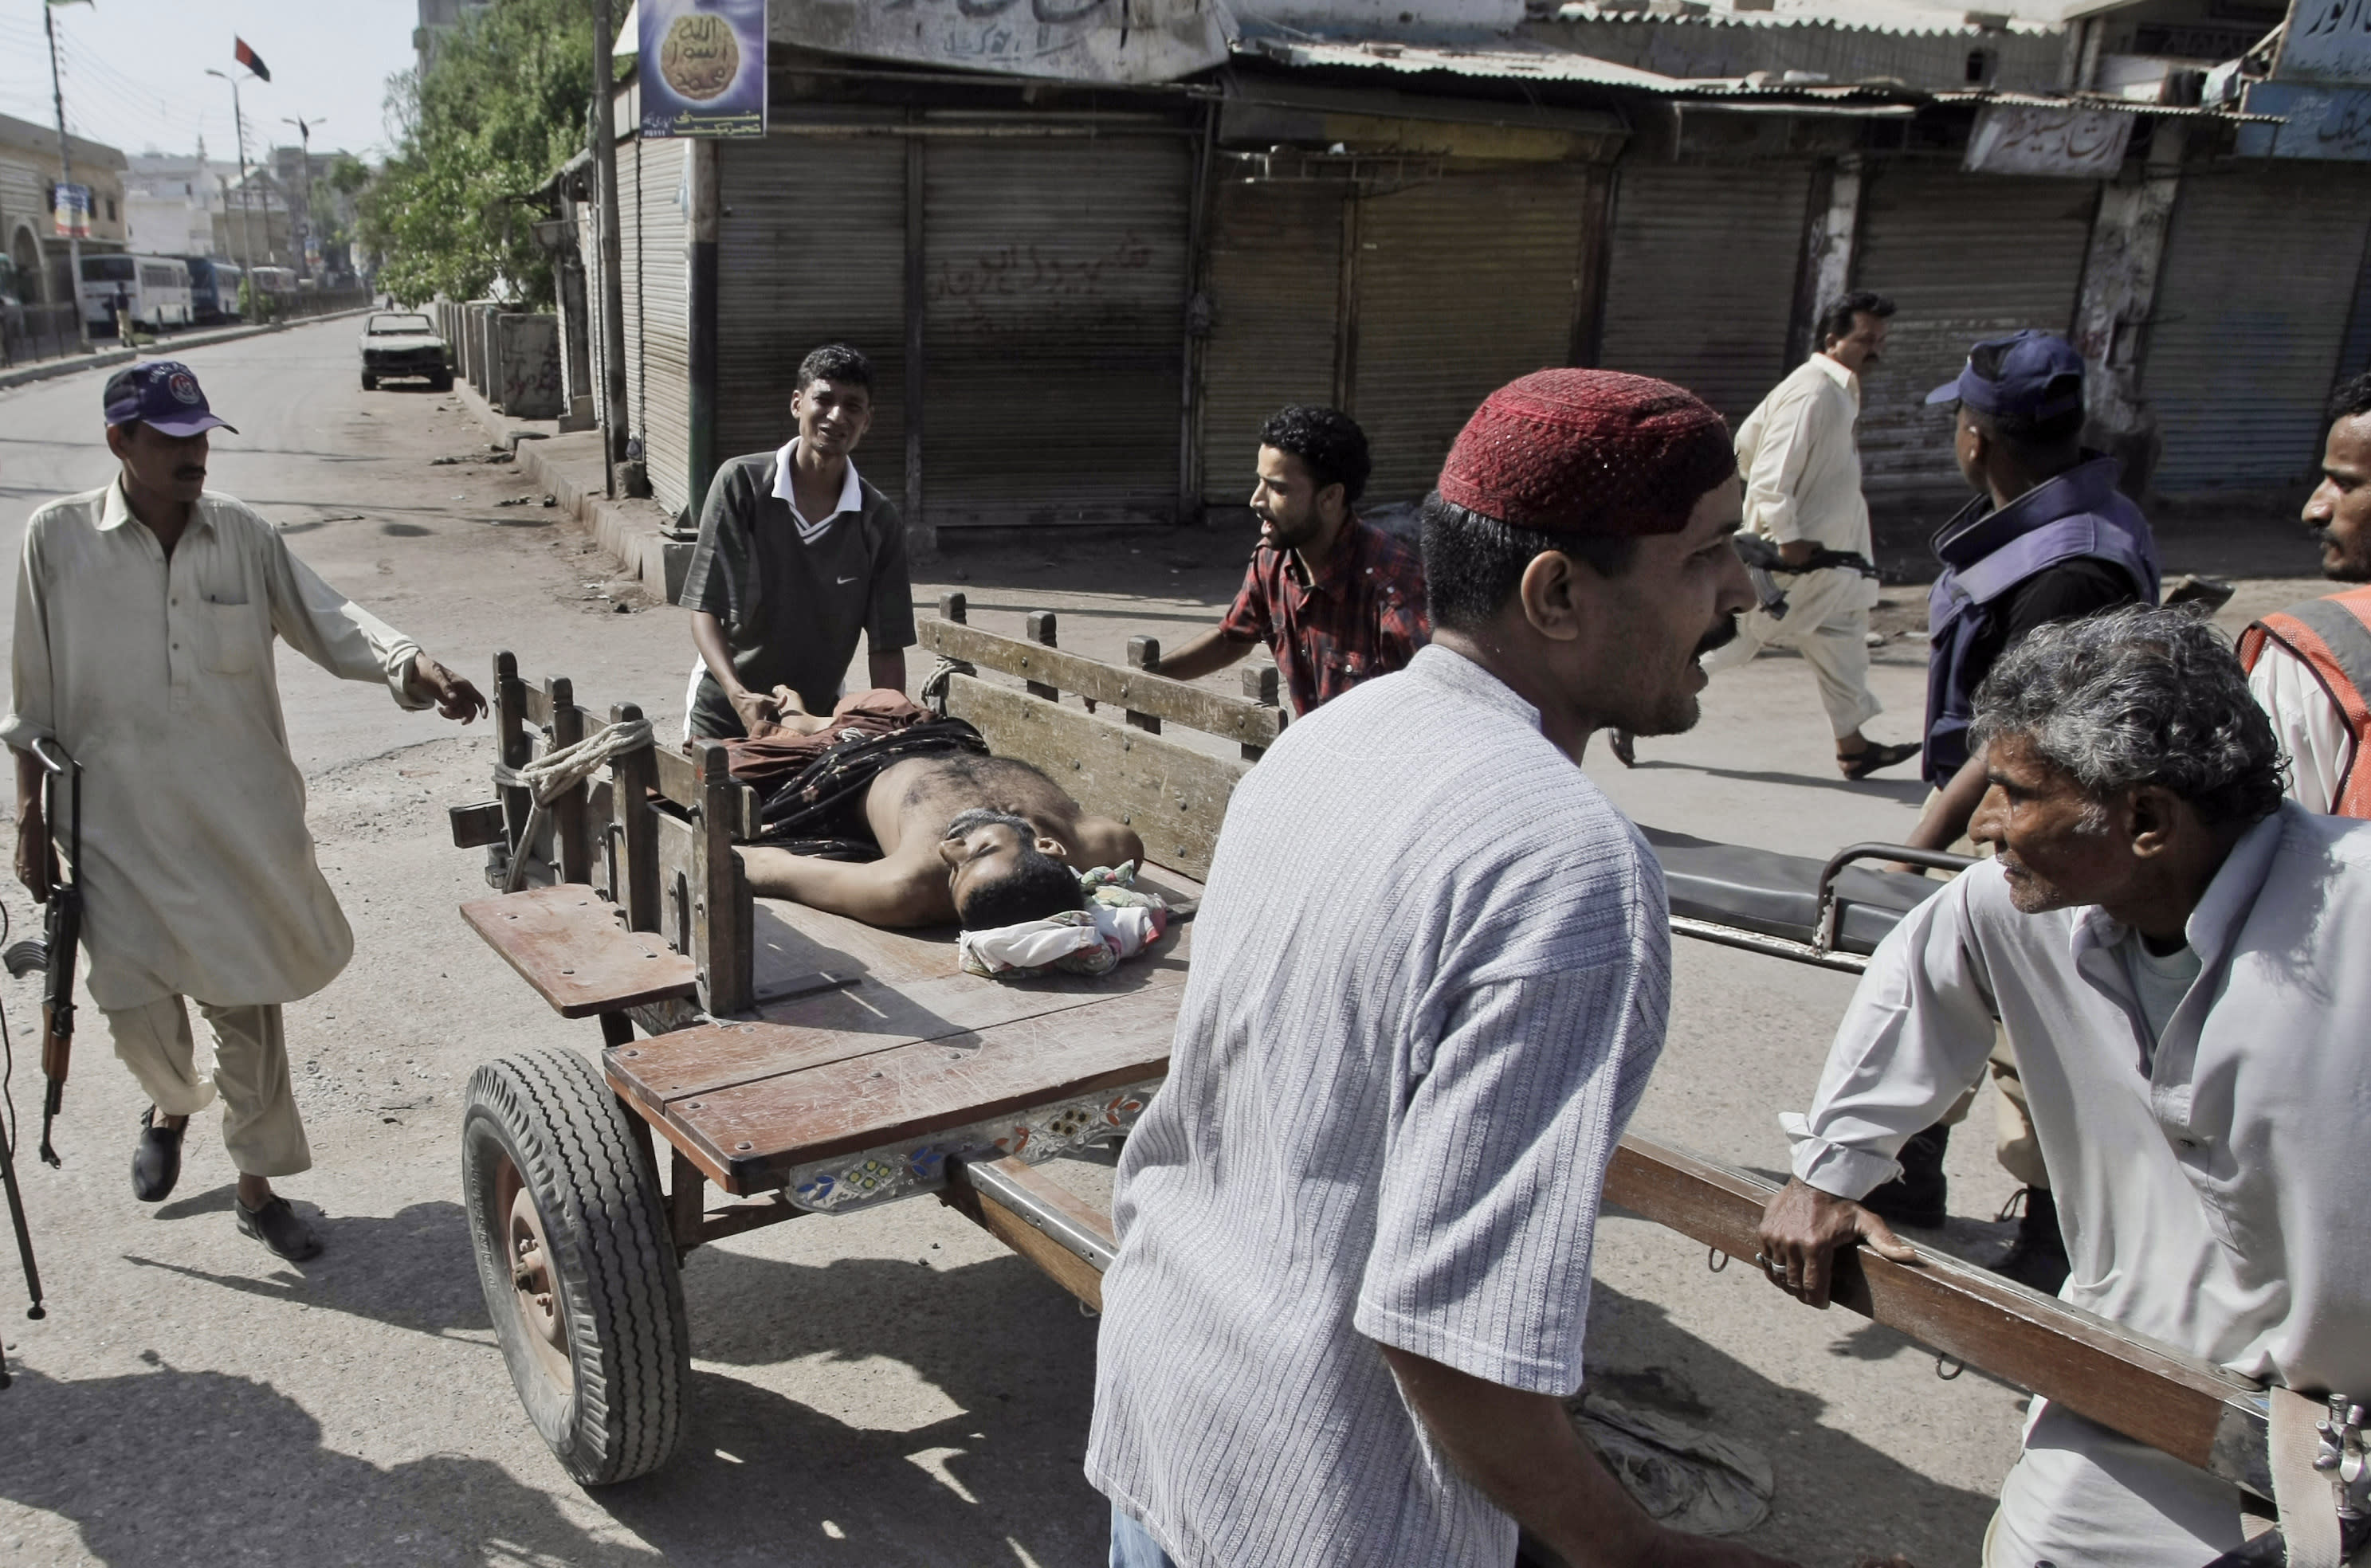 FILE - In this Saturday, April 28, 2012, file photo,Pakistanis use a cart to carry the lifeless body of a civilian away from the site of fighting, during a crackdown operation by Pakistani police commandos against criminals in Karachi's town of Lyari, Pakistan. Over 2,000 people were murdered in Pakistan's largest city last year, but the shooting death of 20-year-old Shahzeb Khan in one of Karachi's most upscale neighborhoods sparked an unusual outcry and highlighted a growing trend of citizens using social media to hold the country's rich and powerful to account. (AP Photo/Fareed Khan, File)